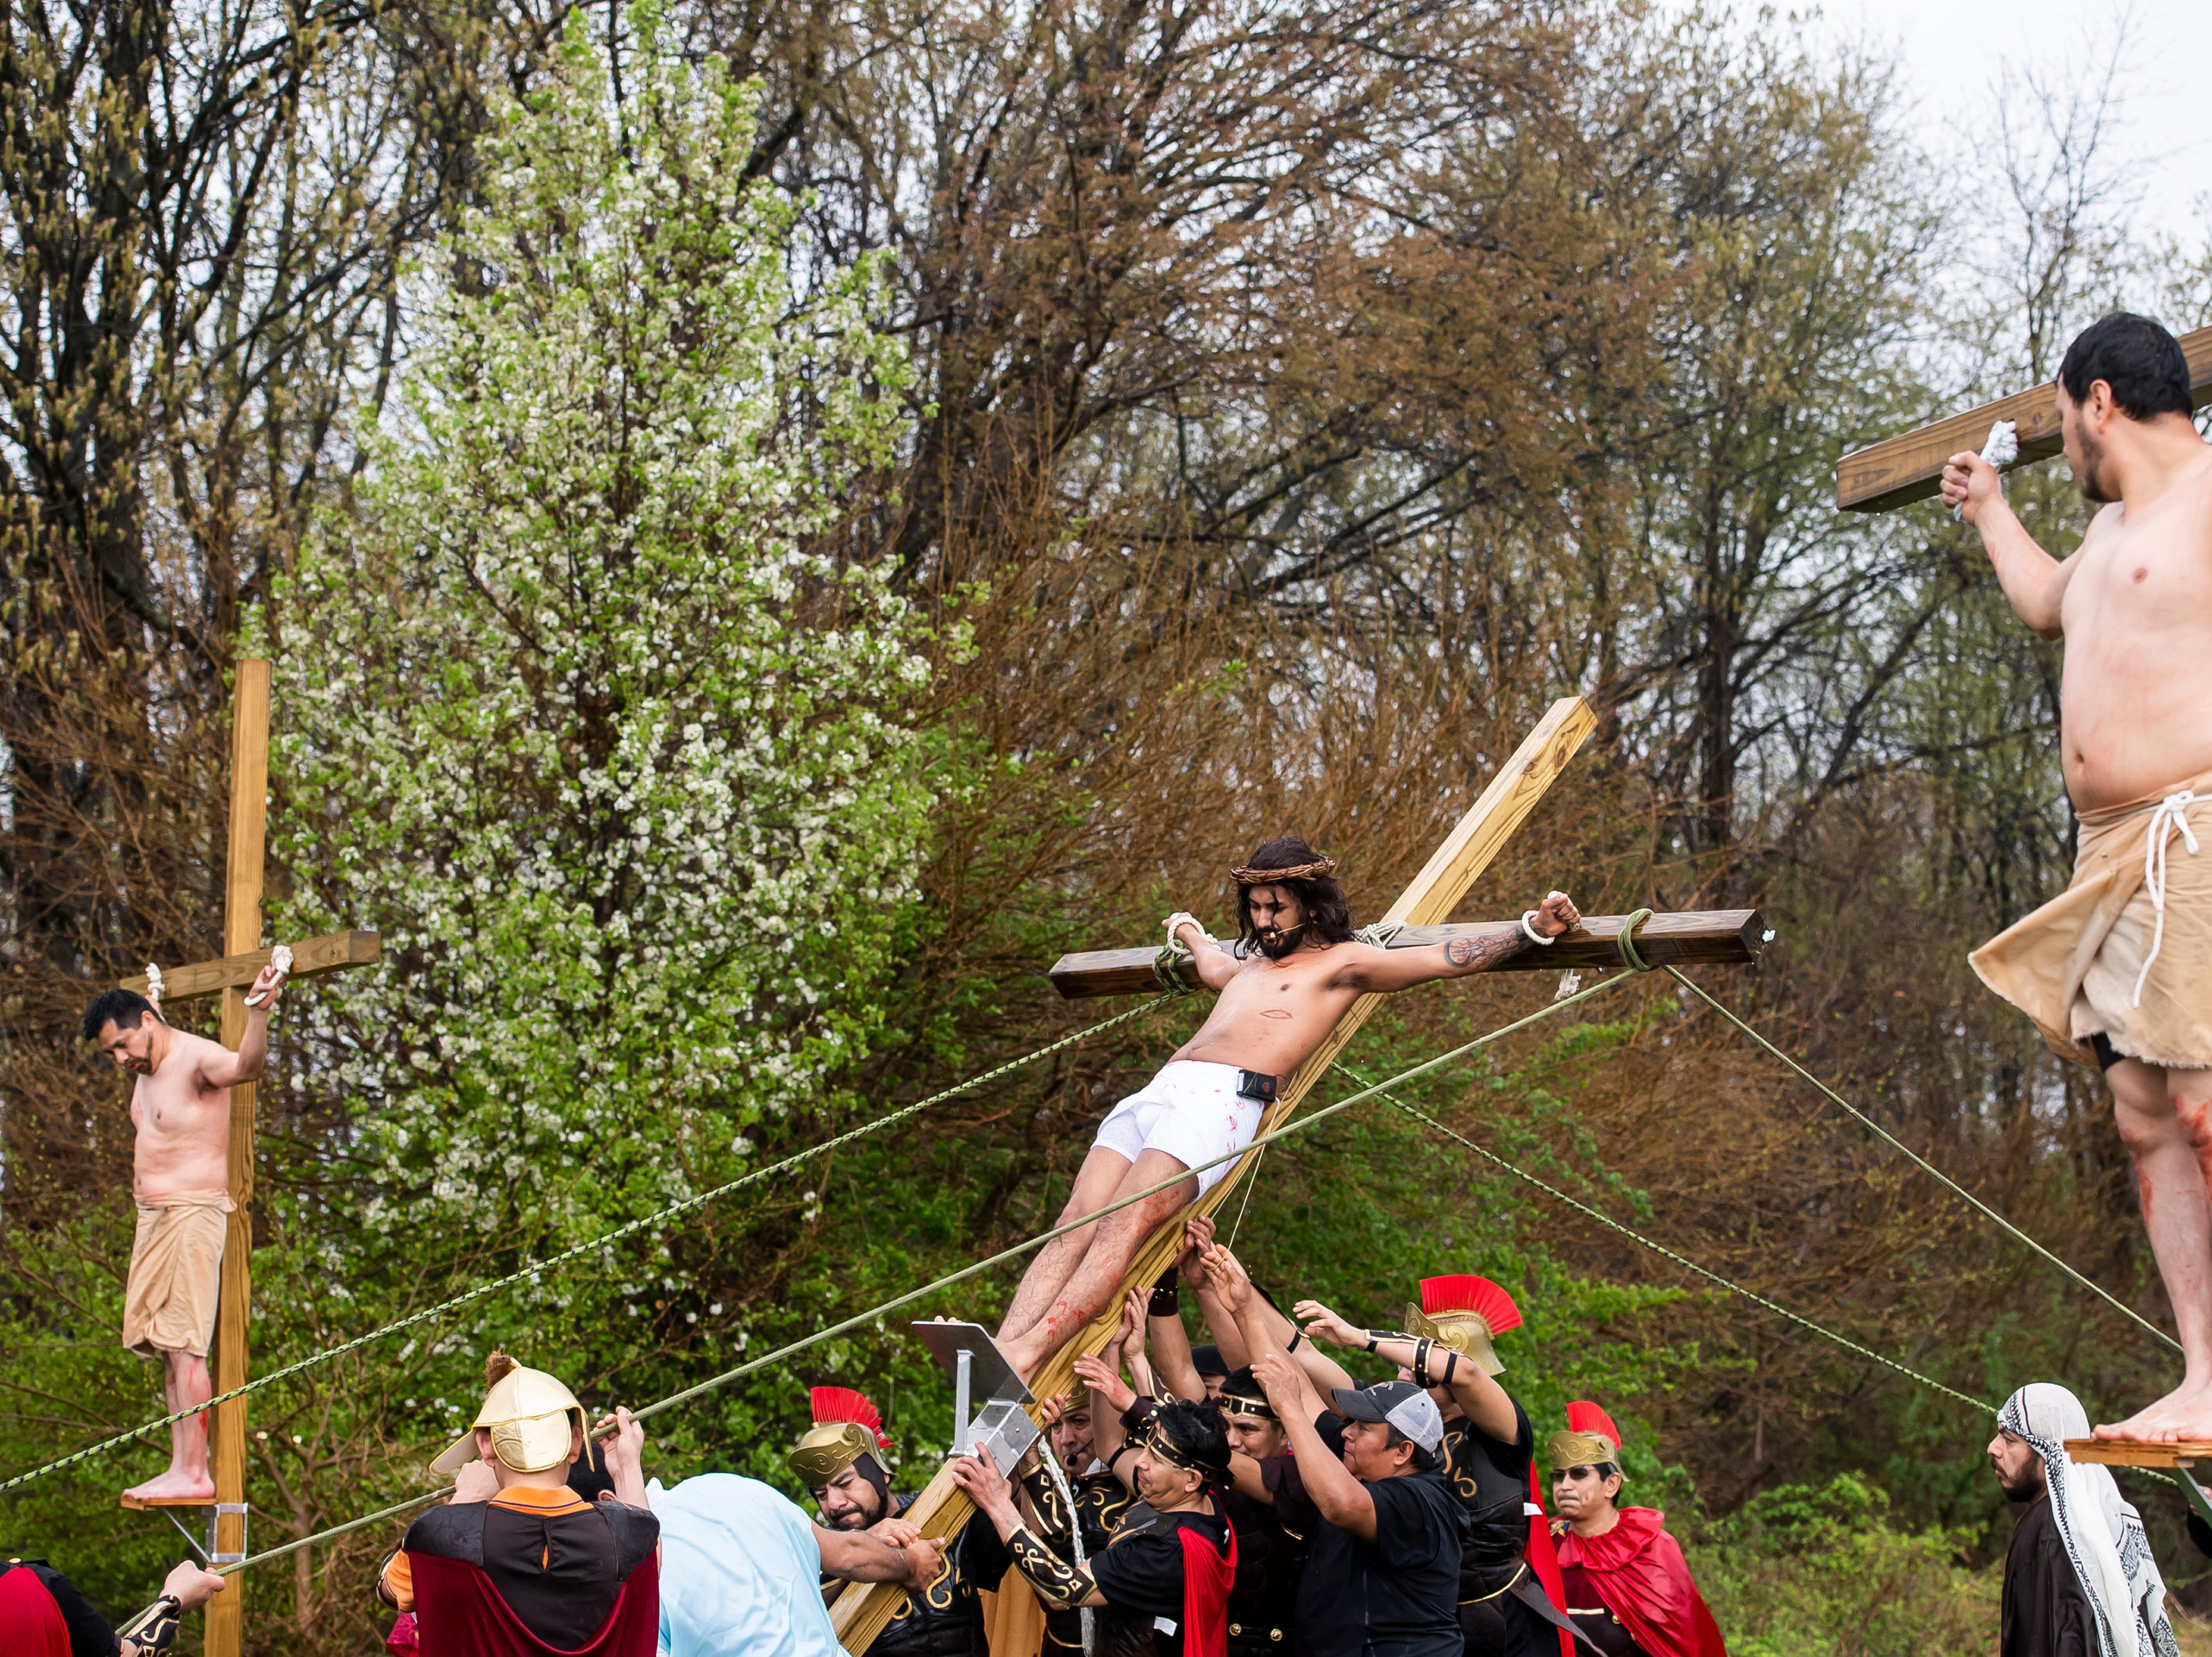 Jose Negret, portraying Jesus, has his cross lifted during a Stations of the Cross procession at St. Joseph Catholic Church in Hanover on Good Friday, April 19, 2019.